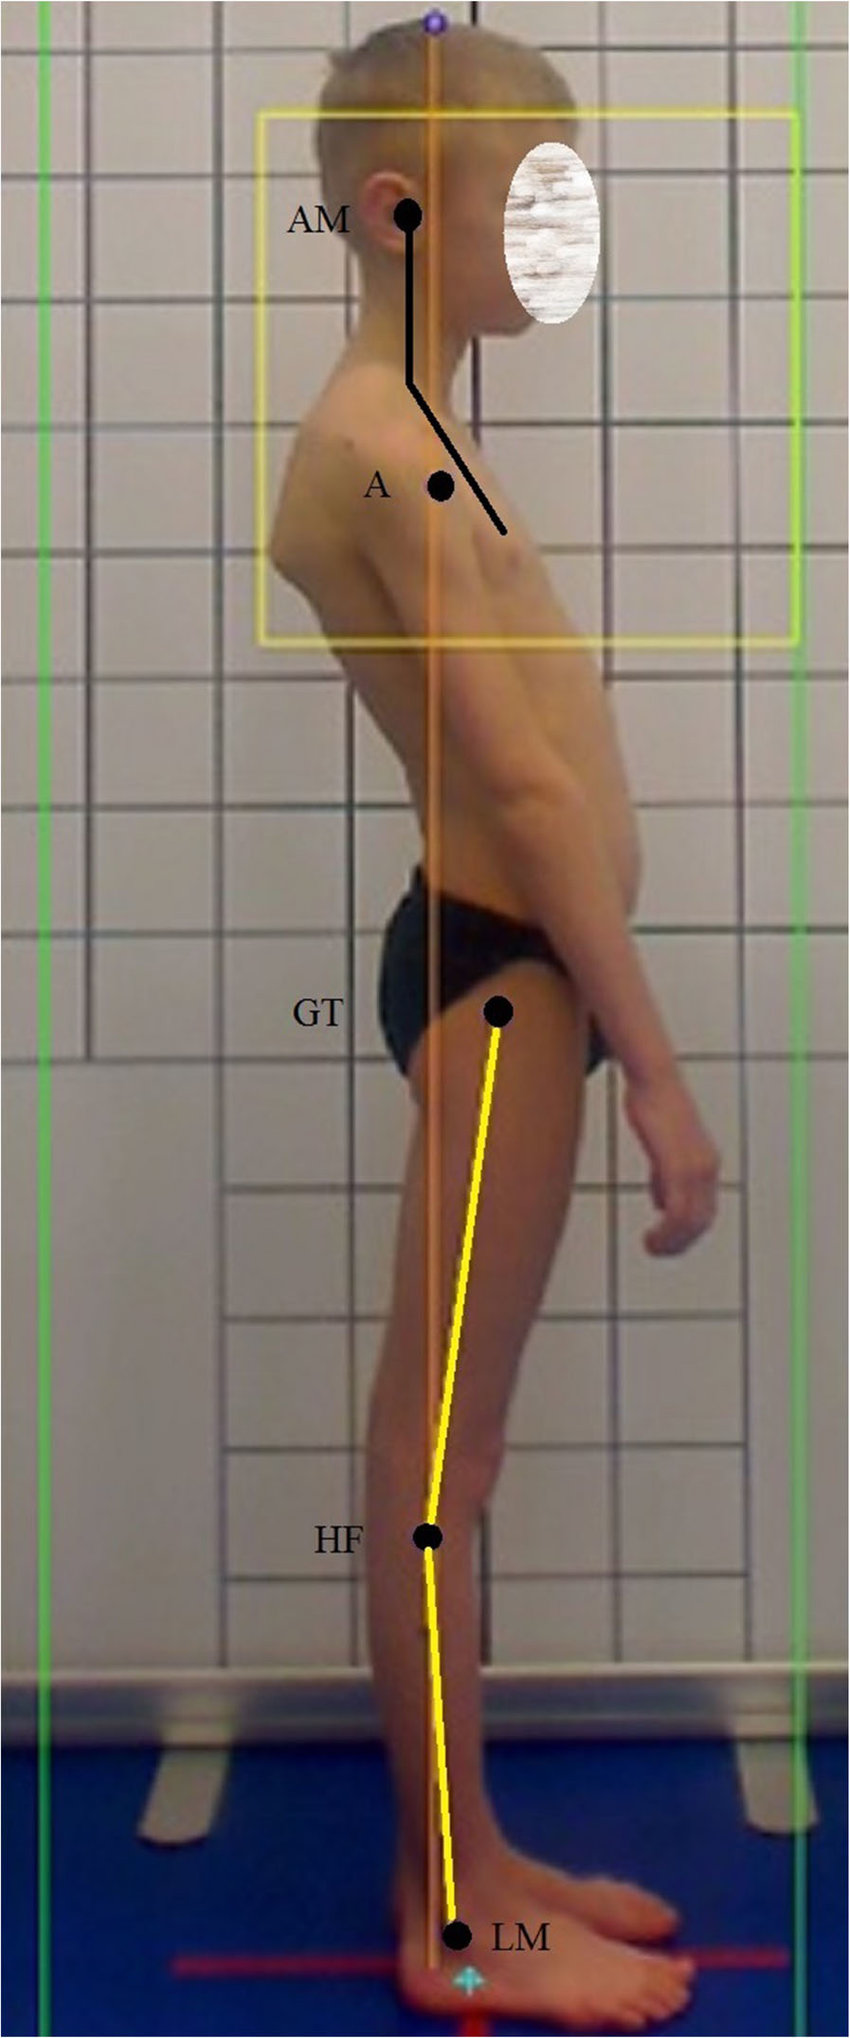 hight resolution of the angle between chest and a head indicates improper head position protraction note